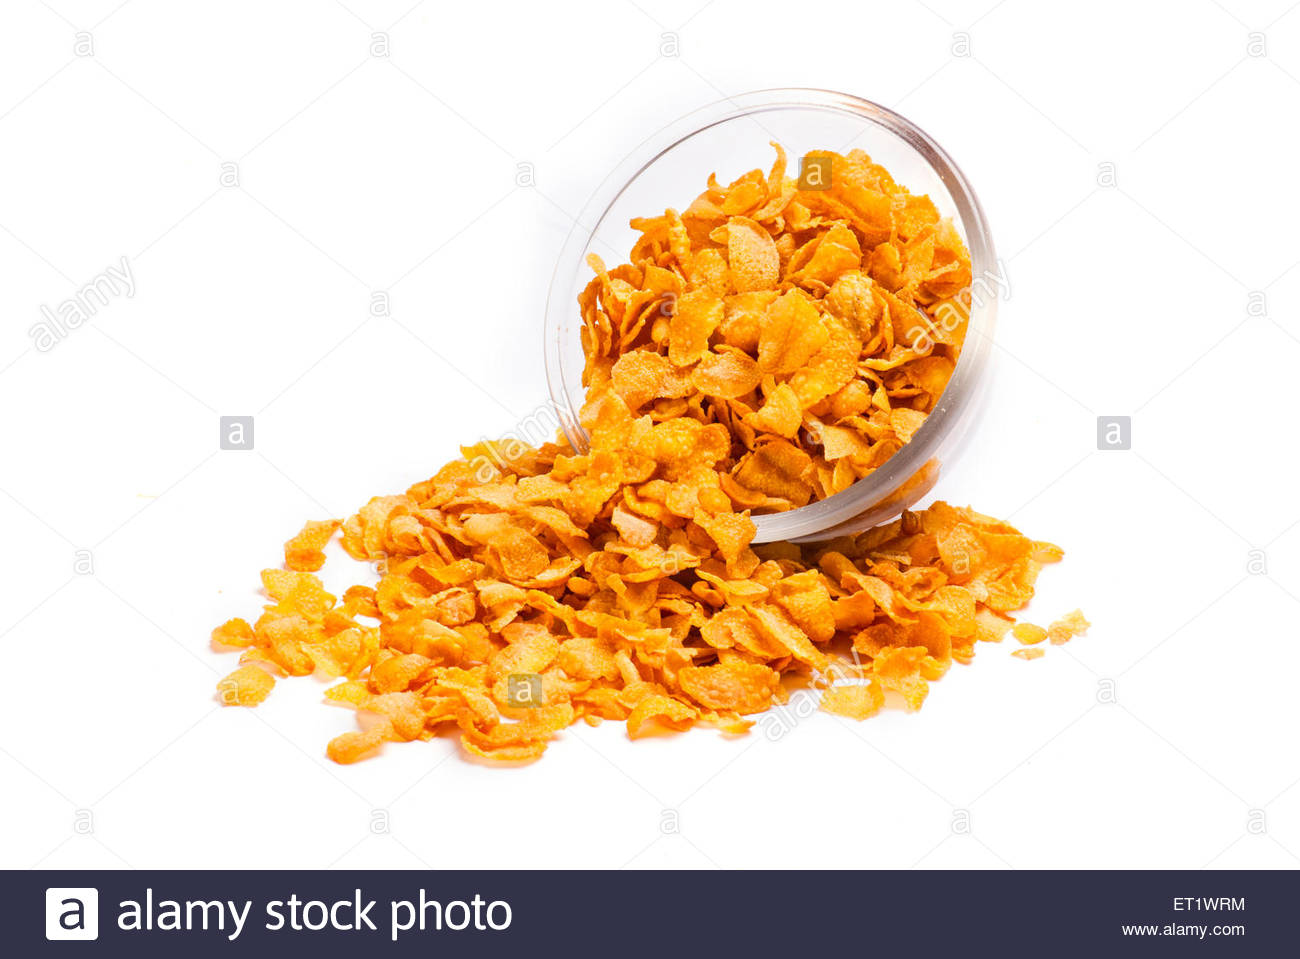 corn flakes in glass bowl on white isolated Background - Stock Image